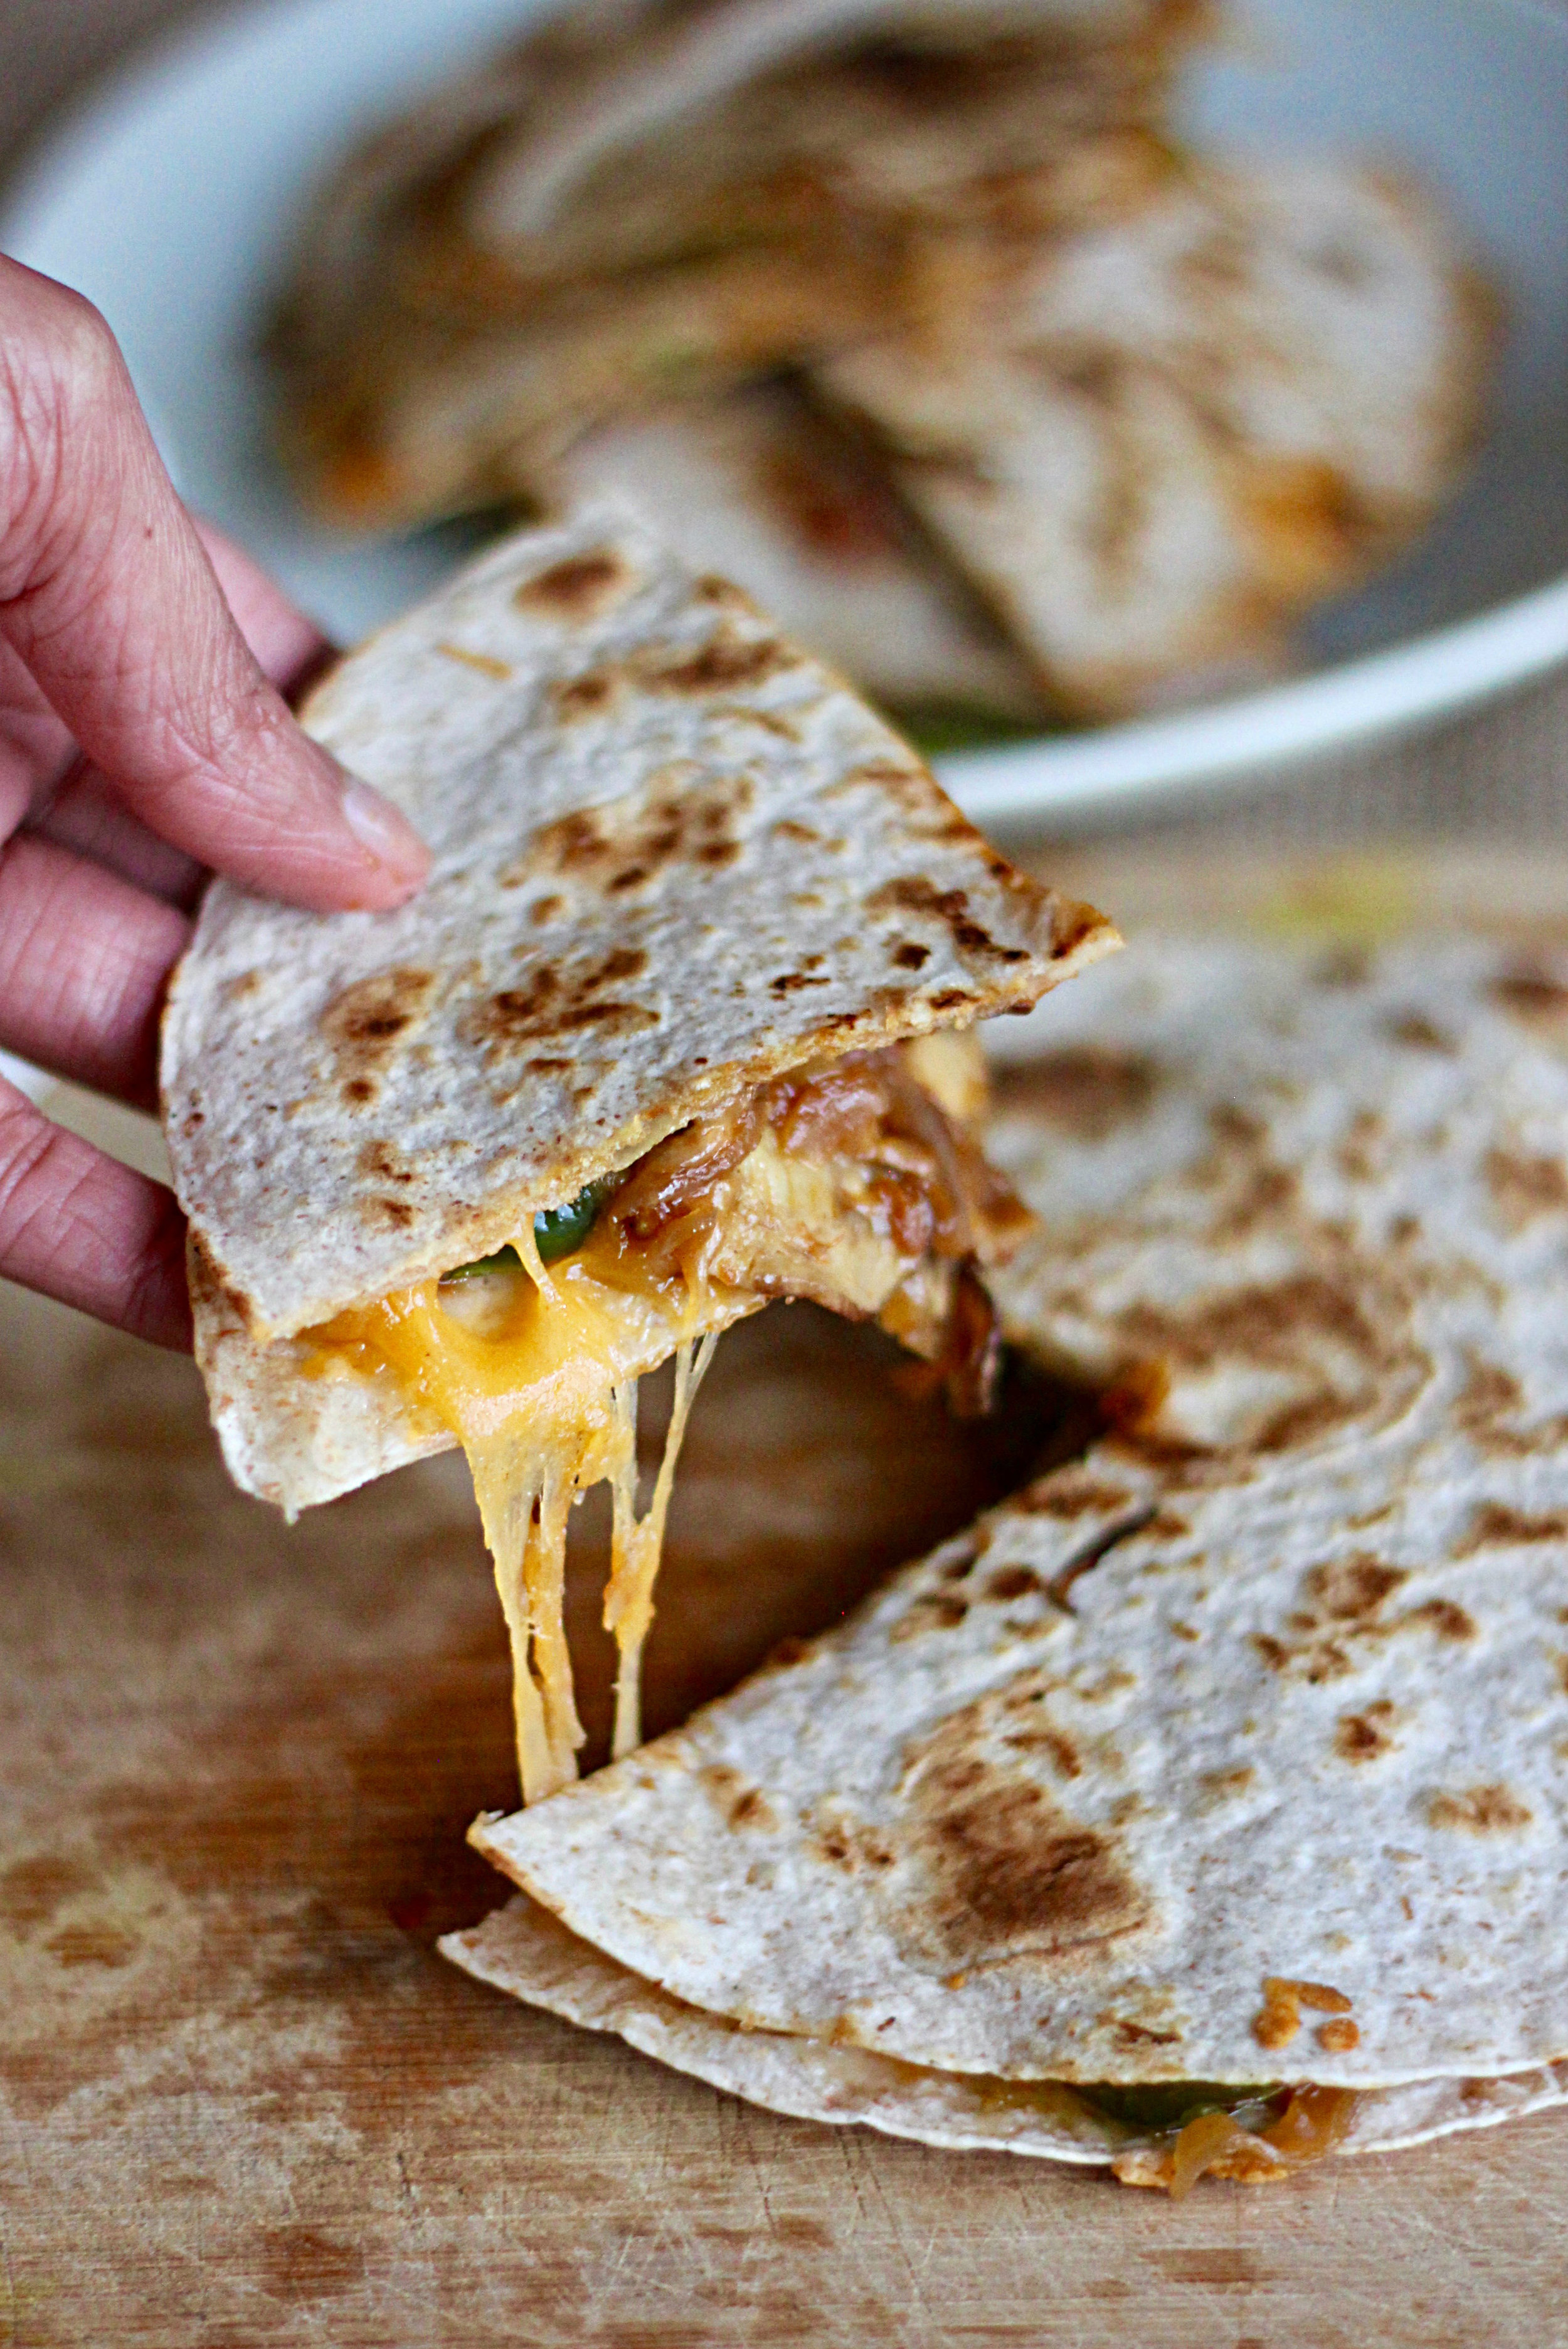 quesadilla_closeup.jpg